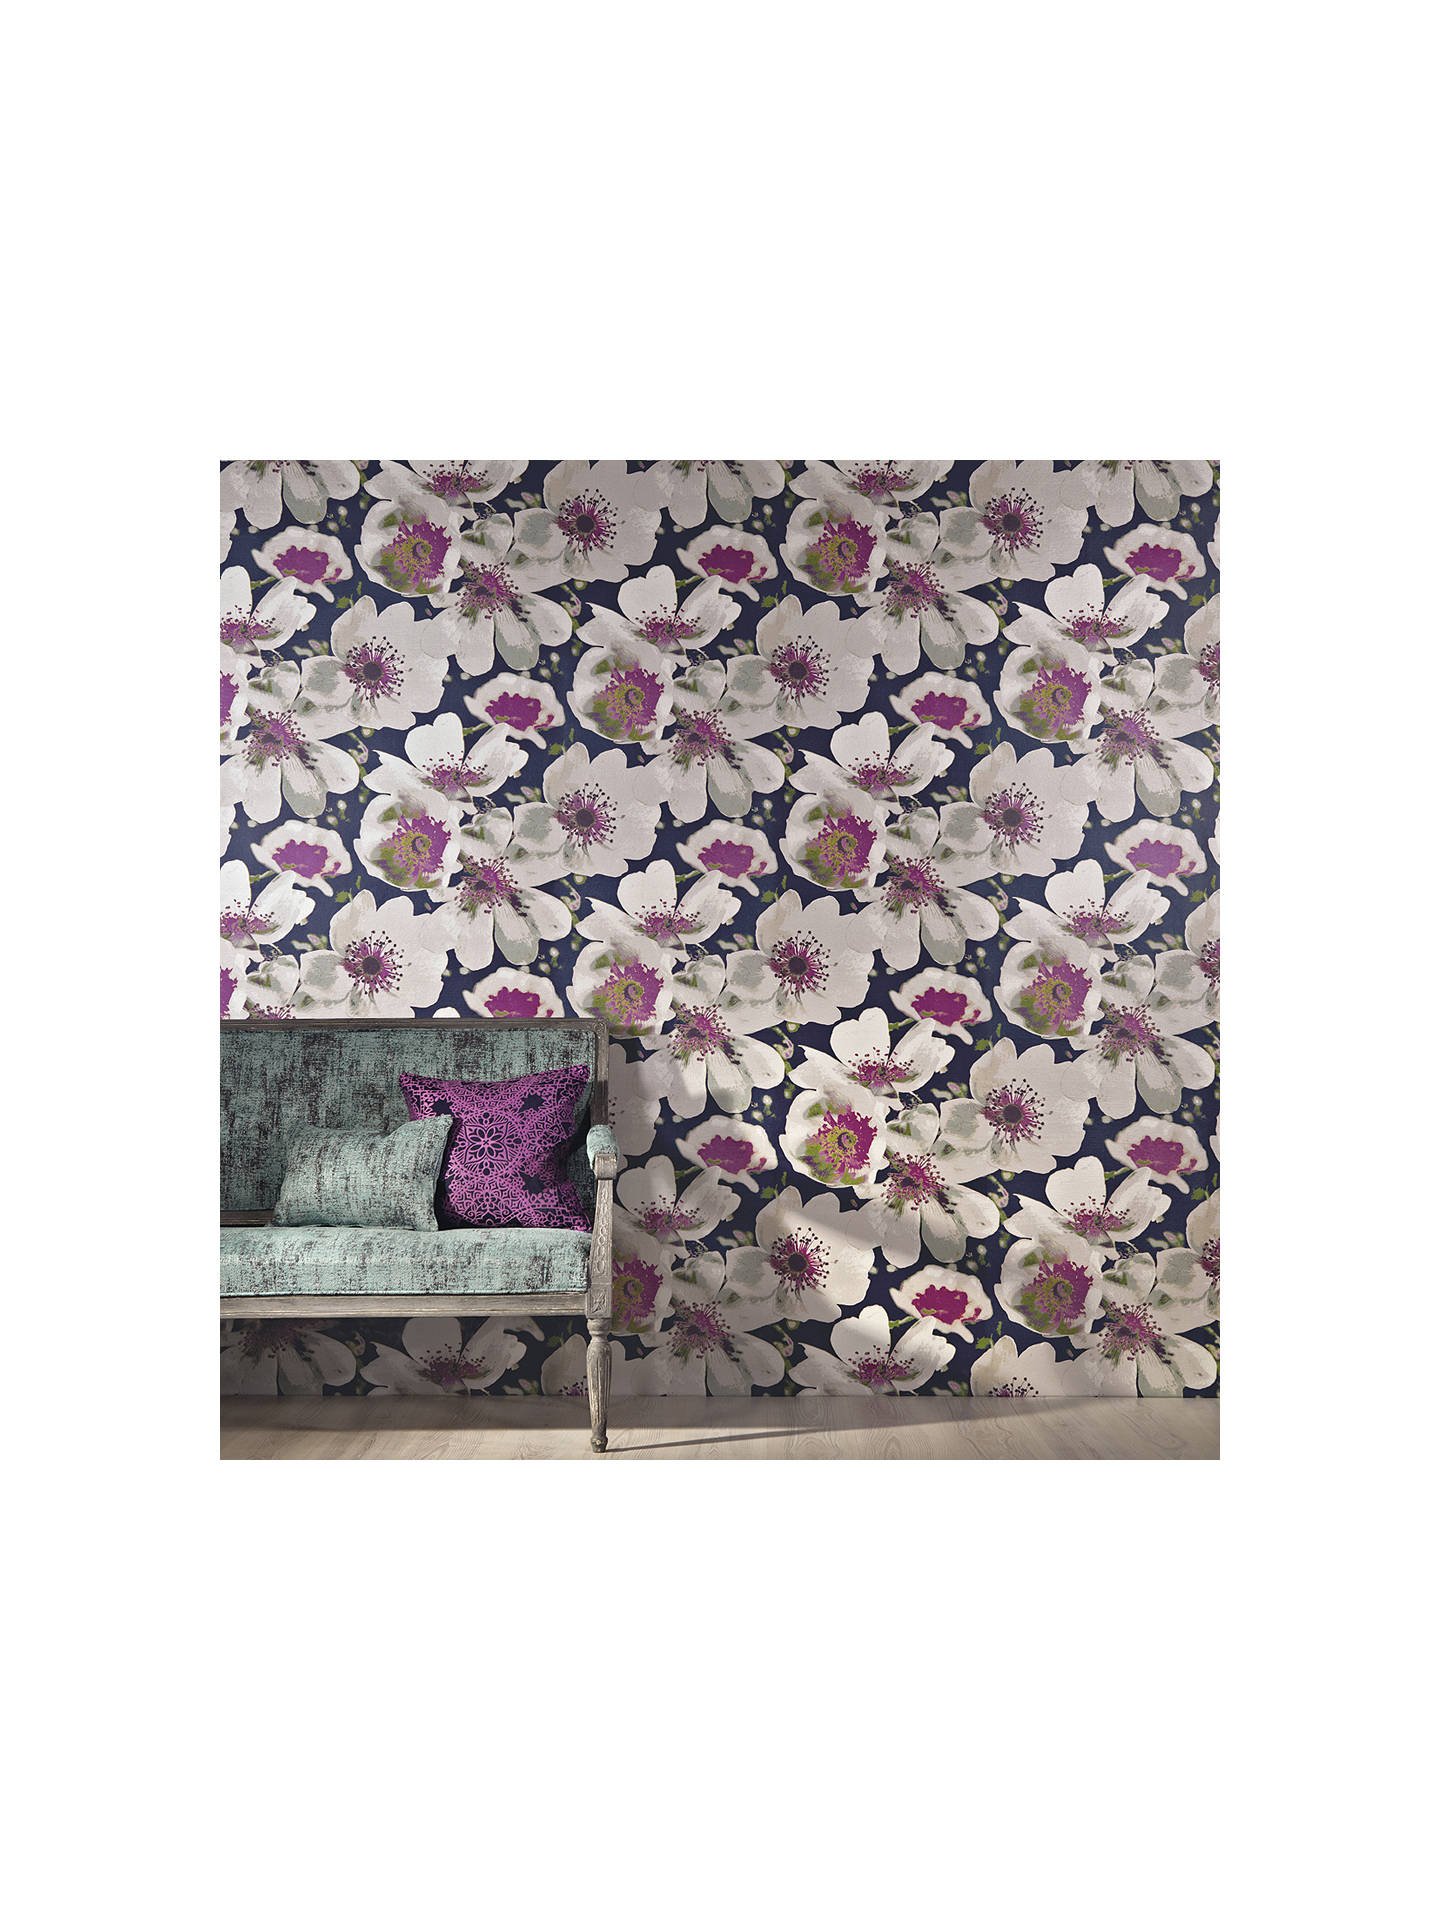 BuyBlack Edition Eden Paste the Wall Wallpaper, Verbena W362/03 Online at johnlewis.com